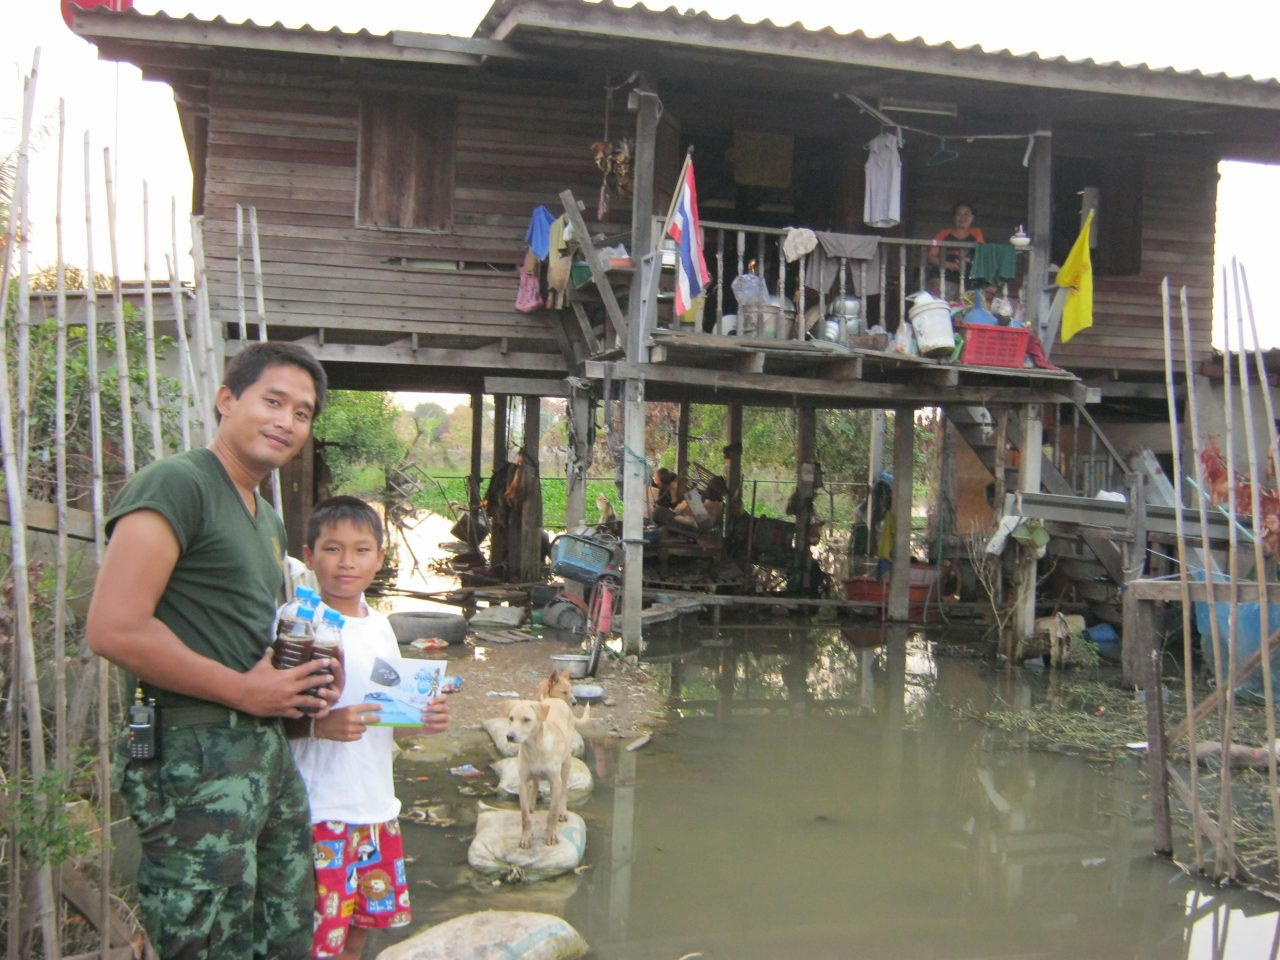 Supplying AEM to isolated people affected by the flood